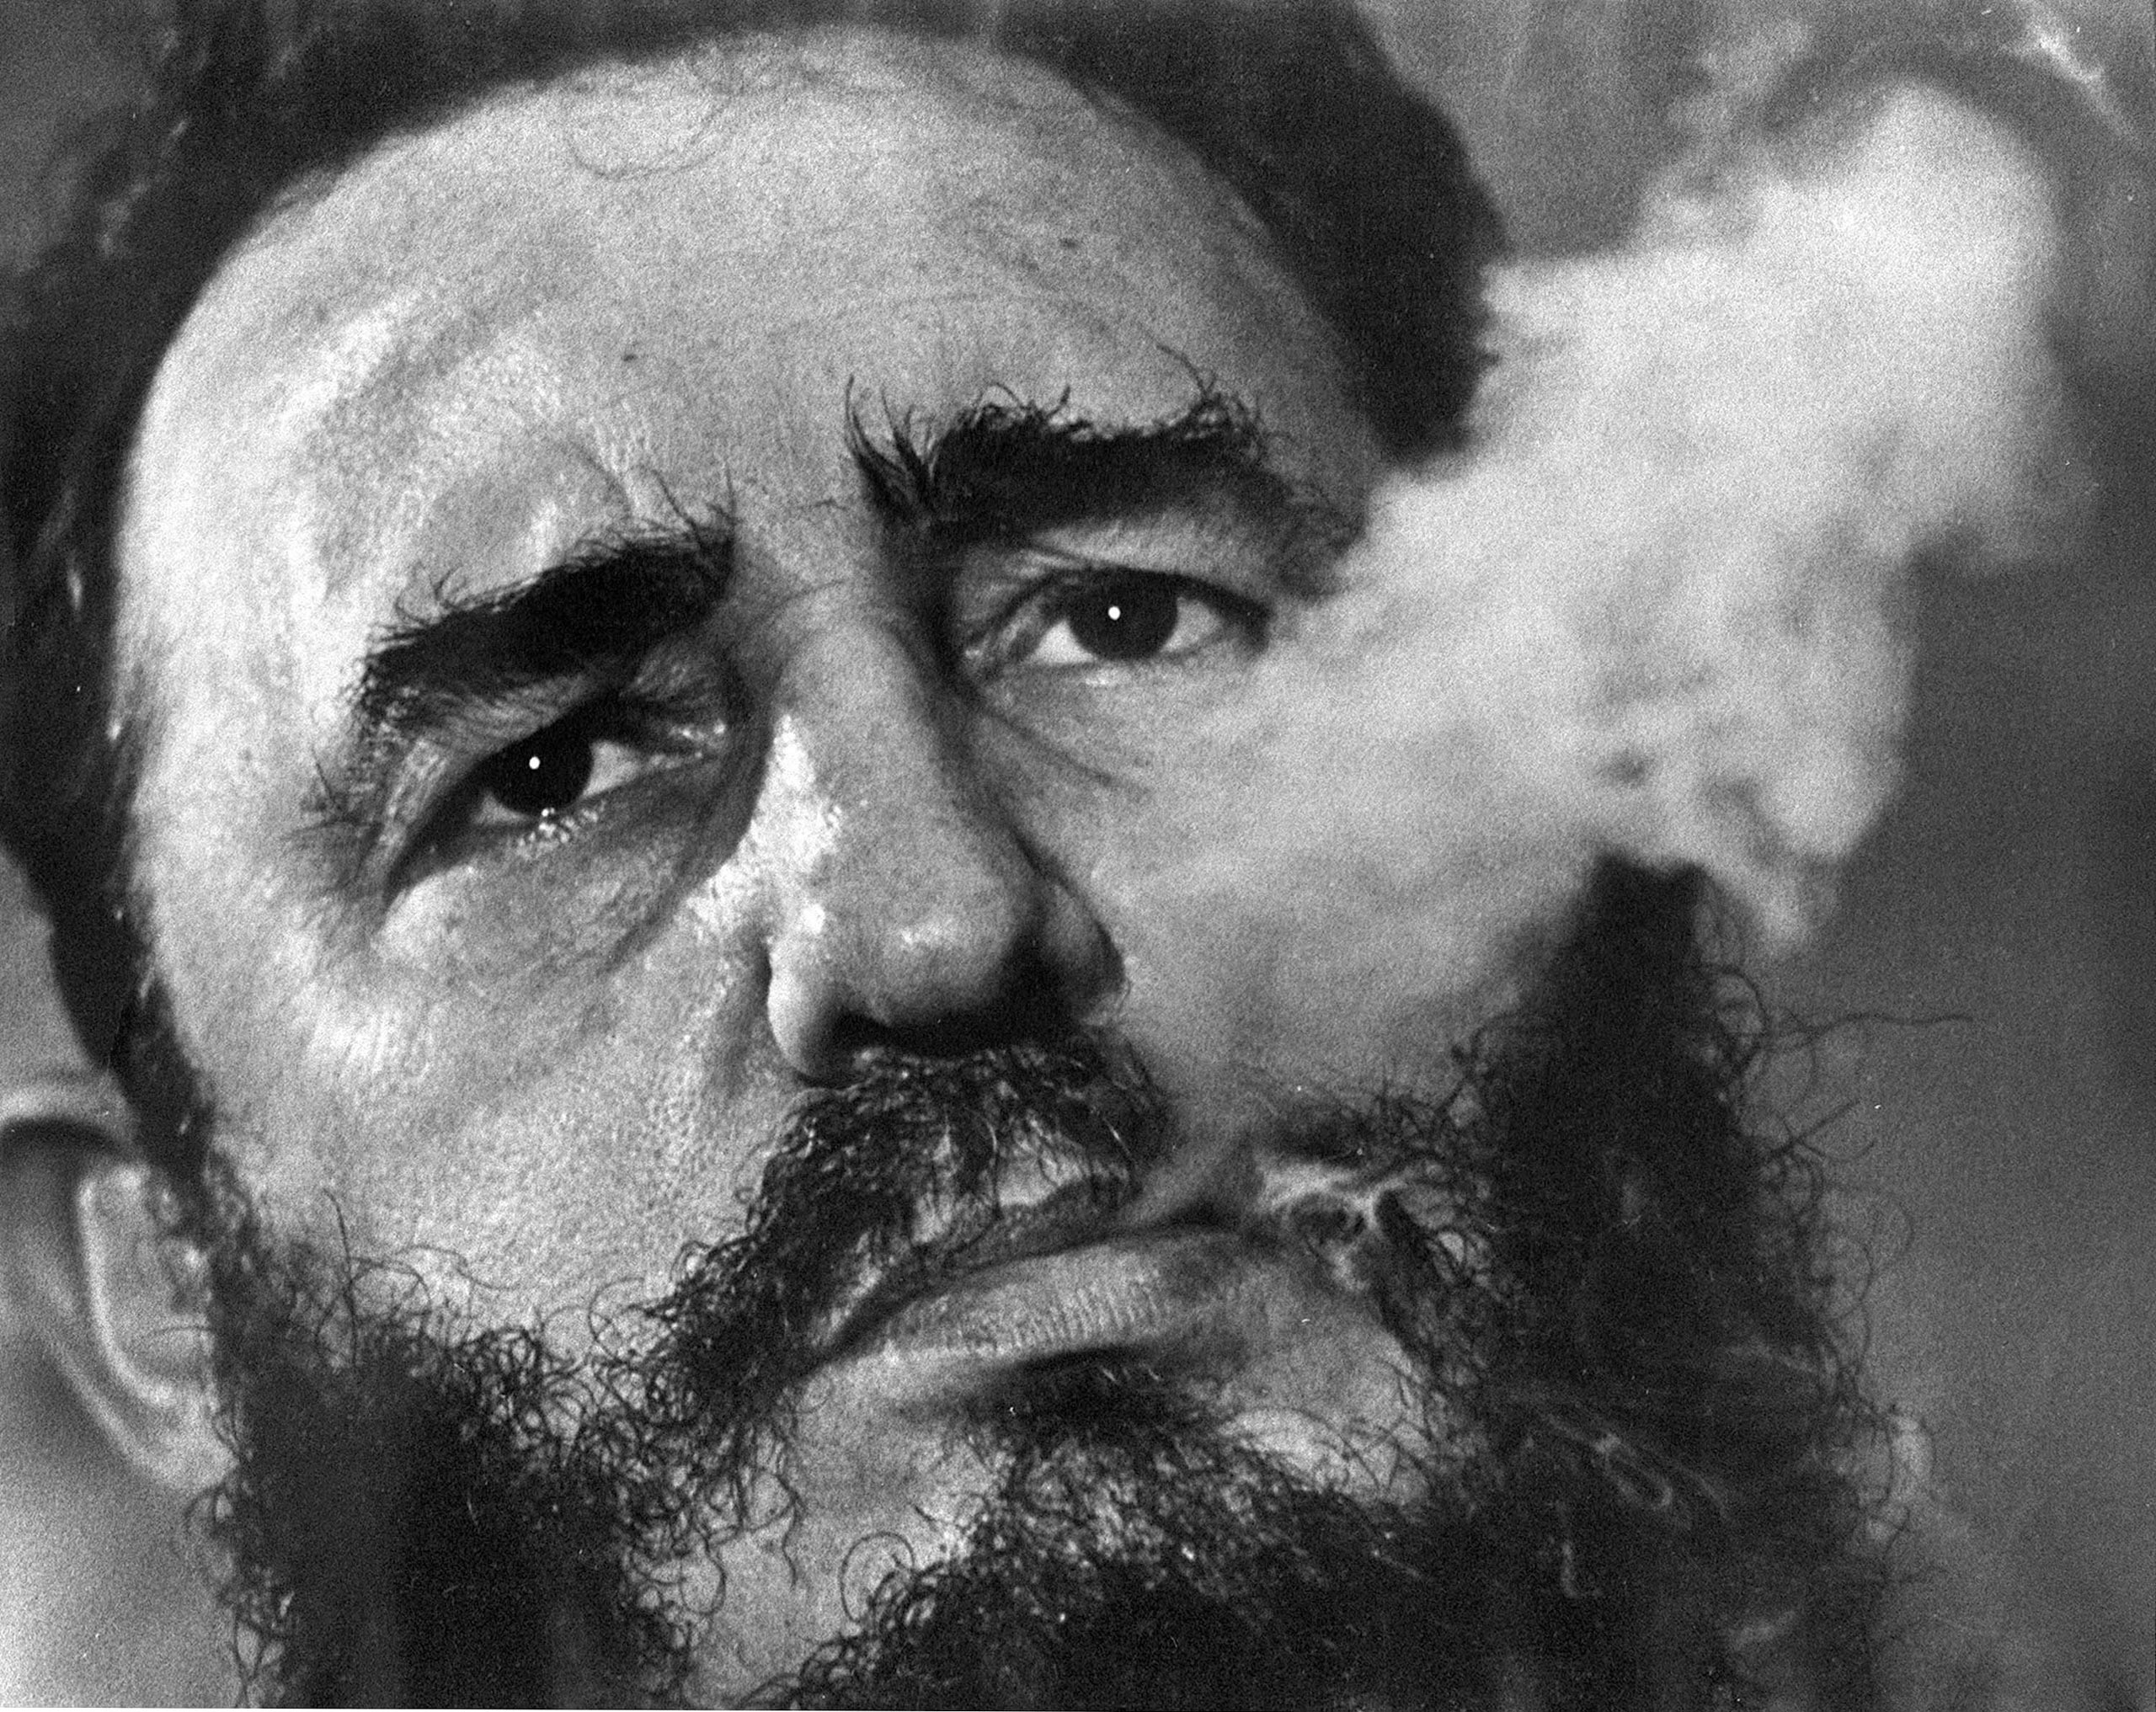 Cuban Prime Minister Fidel Castro exhales cigar smoke during a March 1985 interview at his presidential palace in Havana.